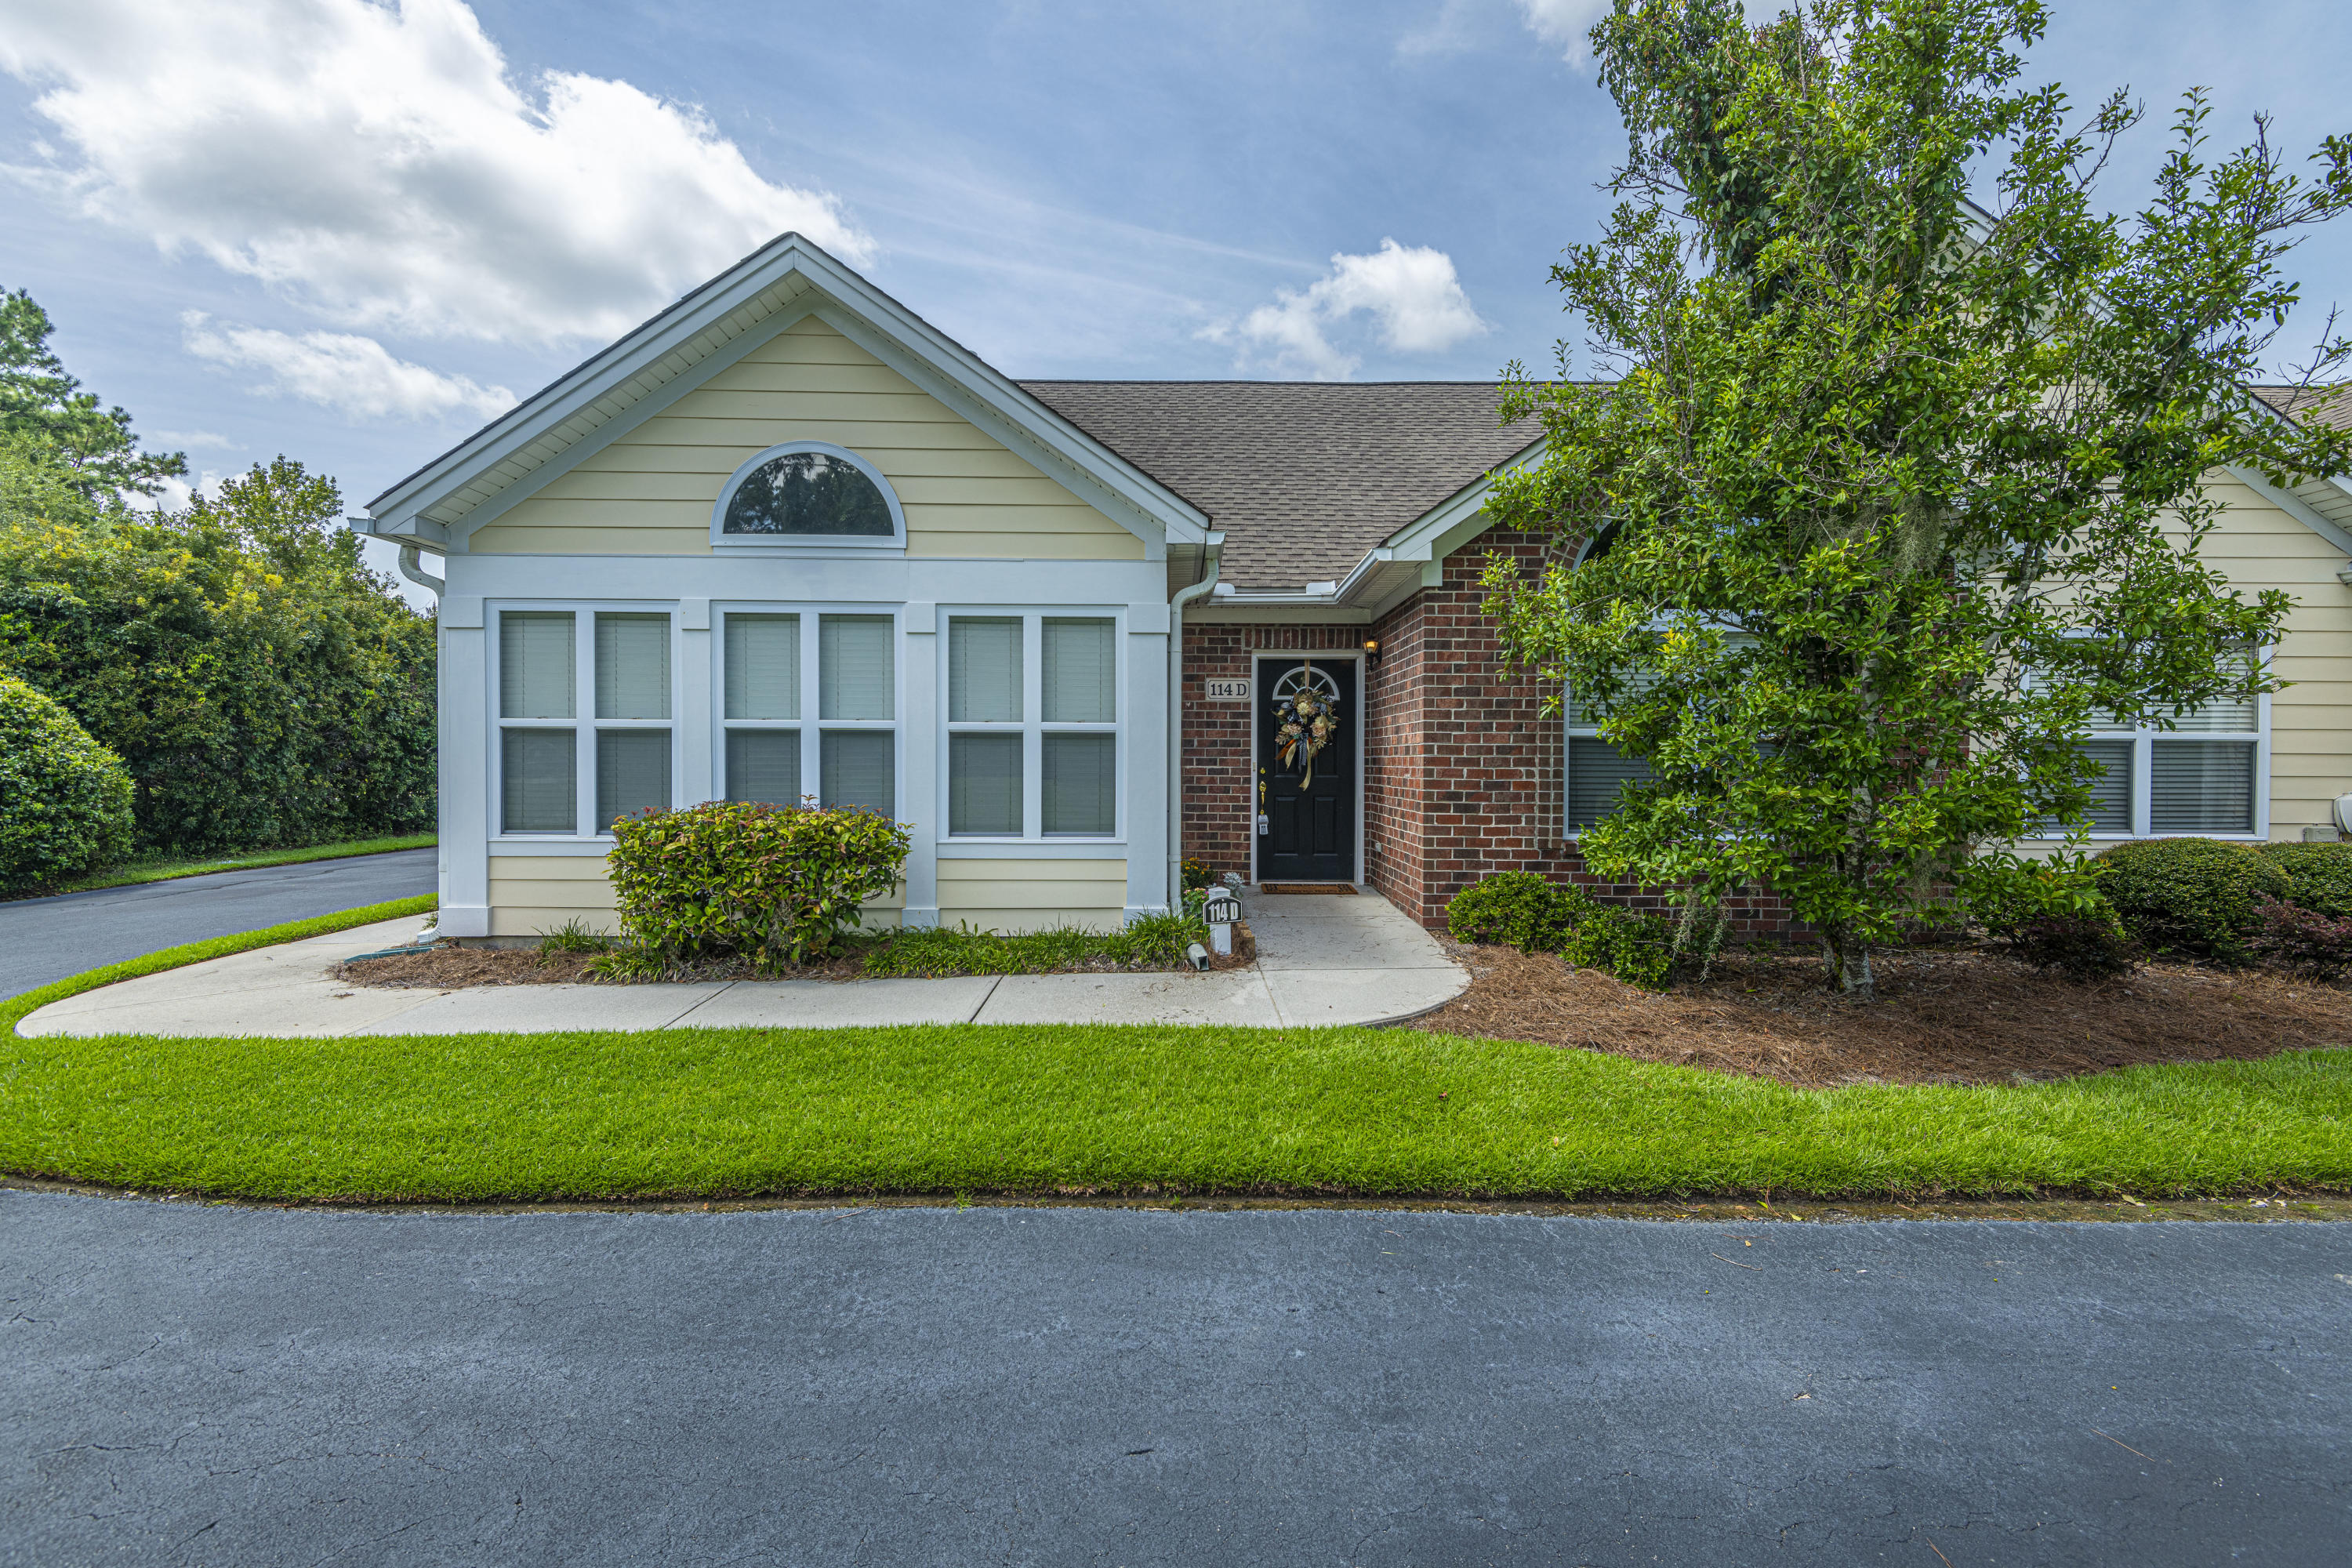 Village at West Ashley Homes For Sale - 3524 Mary Ader, Charleston, SC - 15